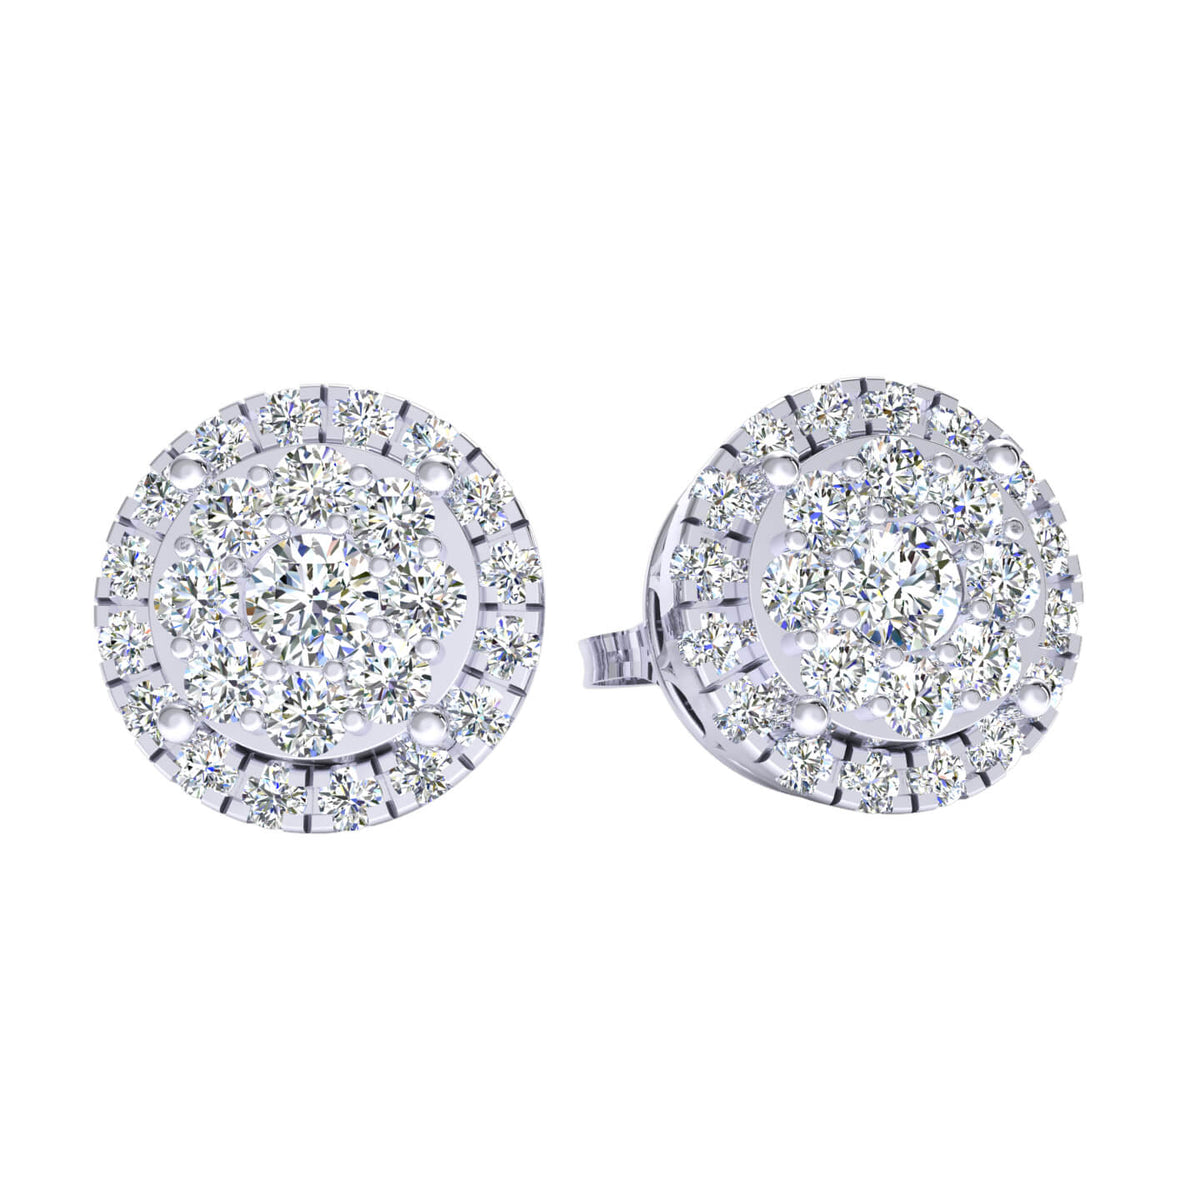 1.25 Ct Circle Round GH I1-I2 Diamond Stud Earrings For Womens 925 Sterling Silver